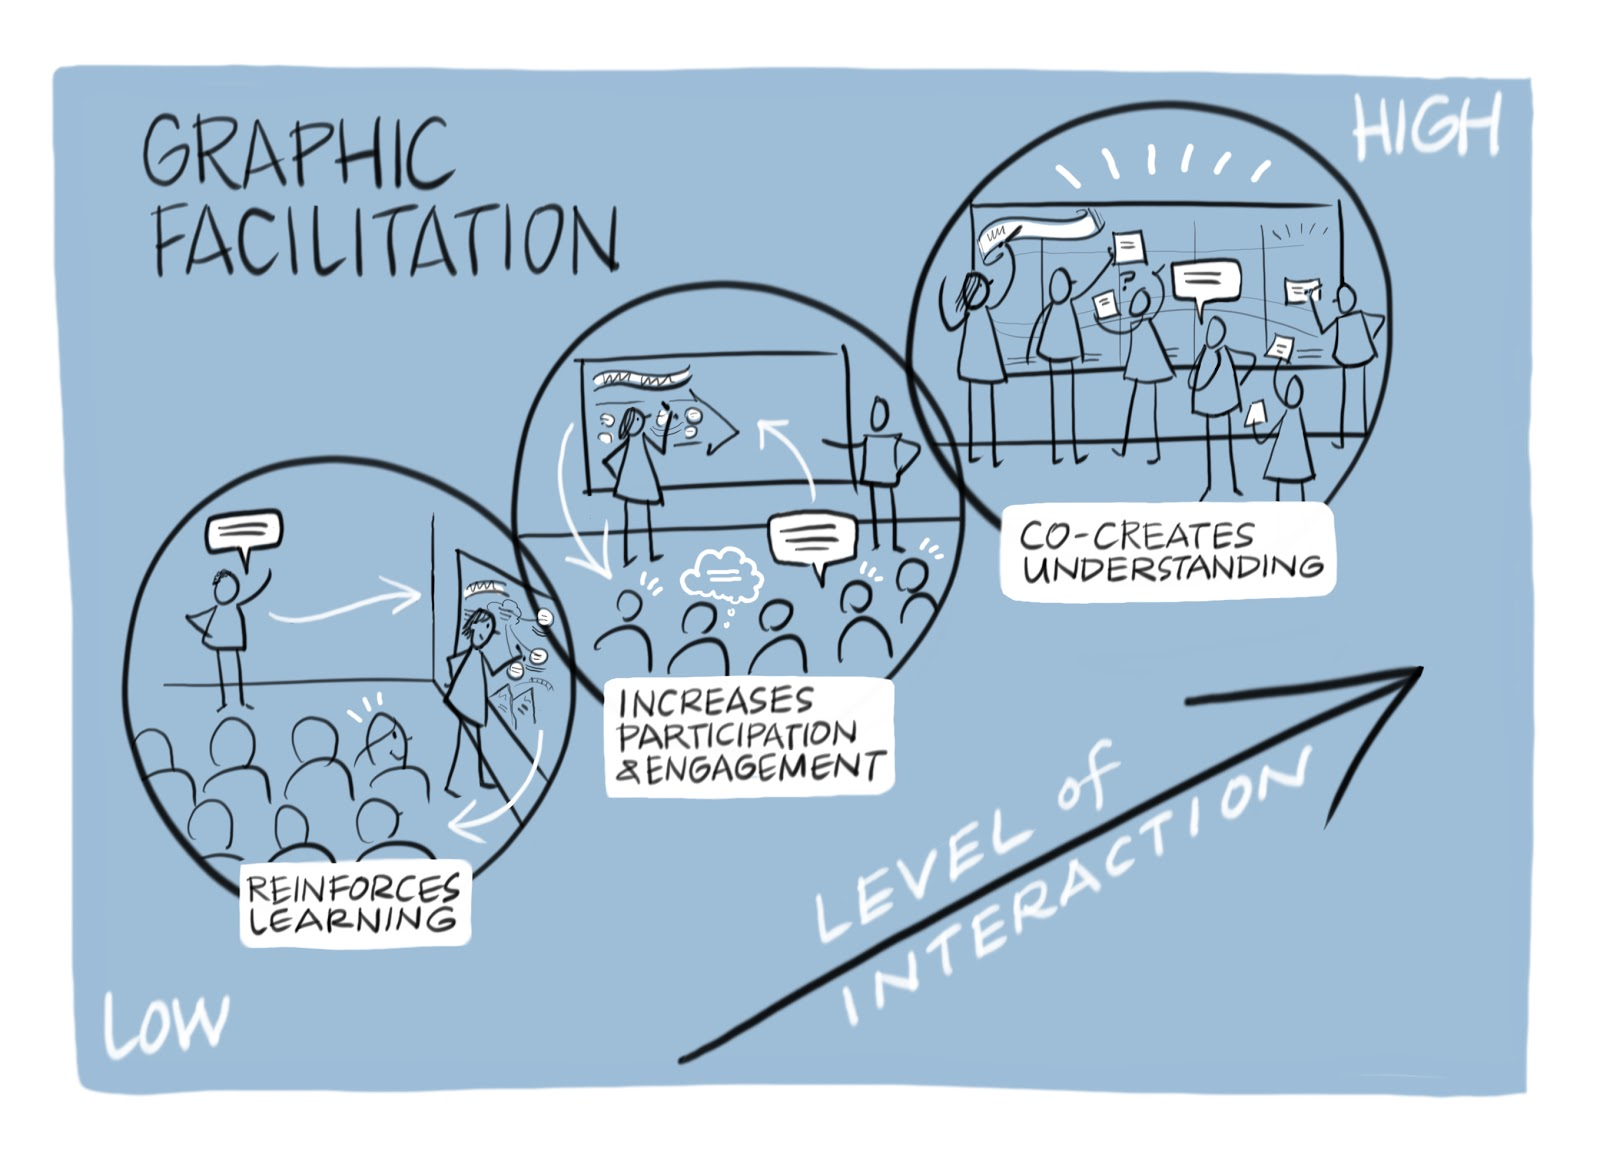 Graphic facilitation a way to reinforce learning increase graphic facilitation a way to reinforce learning increase engagement and co create understanding the graphicdistillery the graphicdistillery maxwellsz